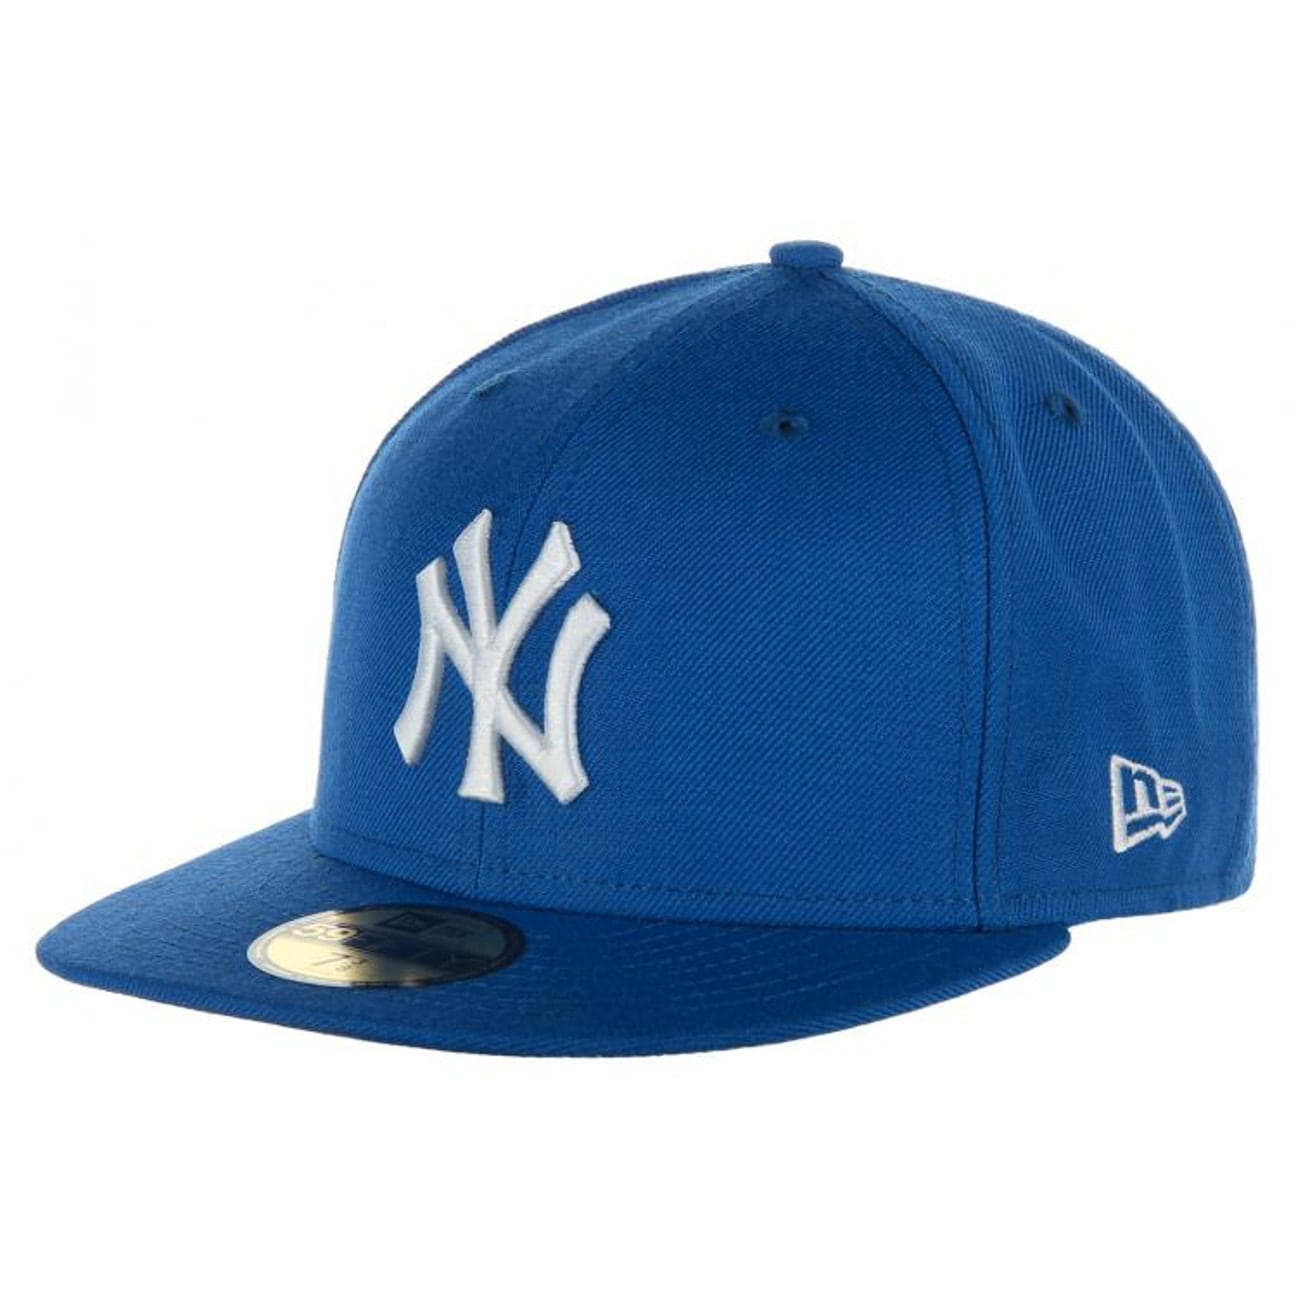 169a2ca61610d Fifty gorra basic new era azul royal jpg 1296x1296 Gorra ny